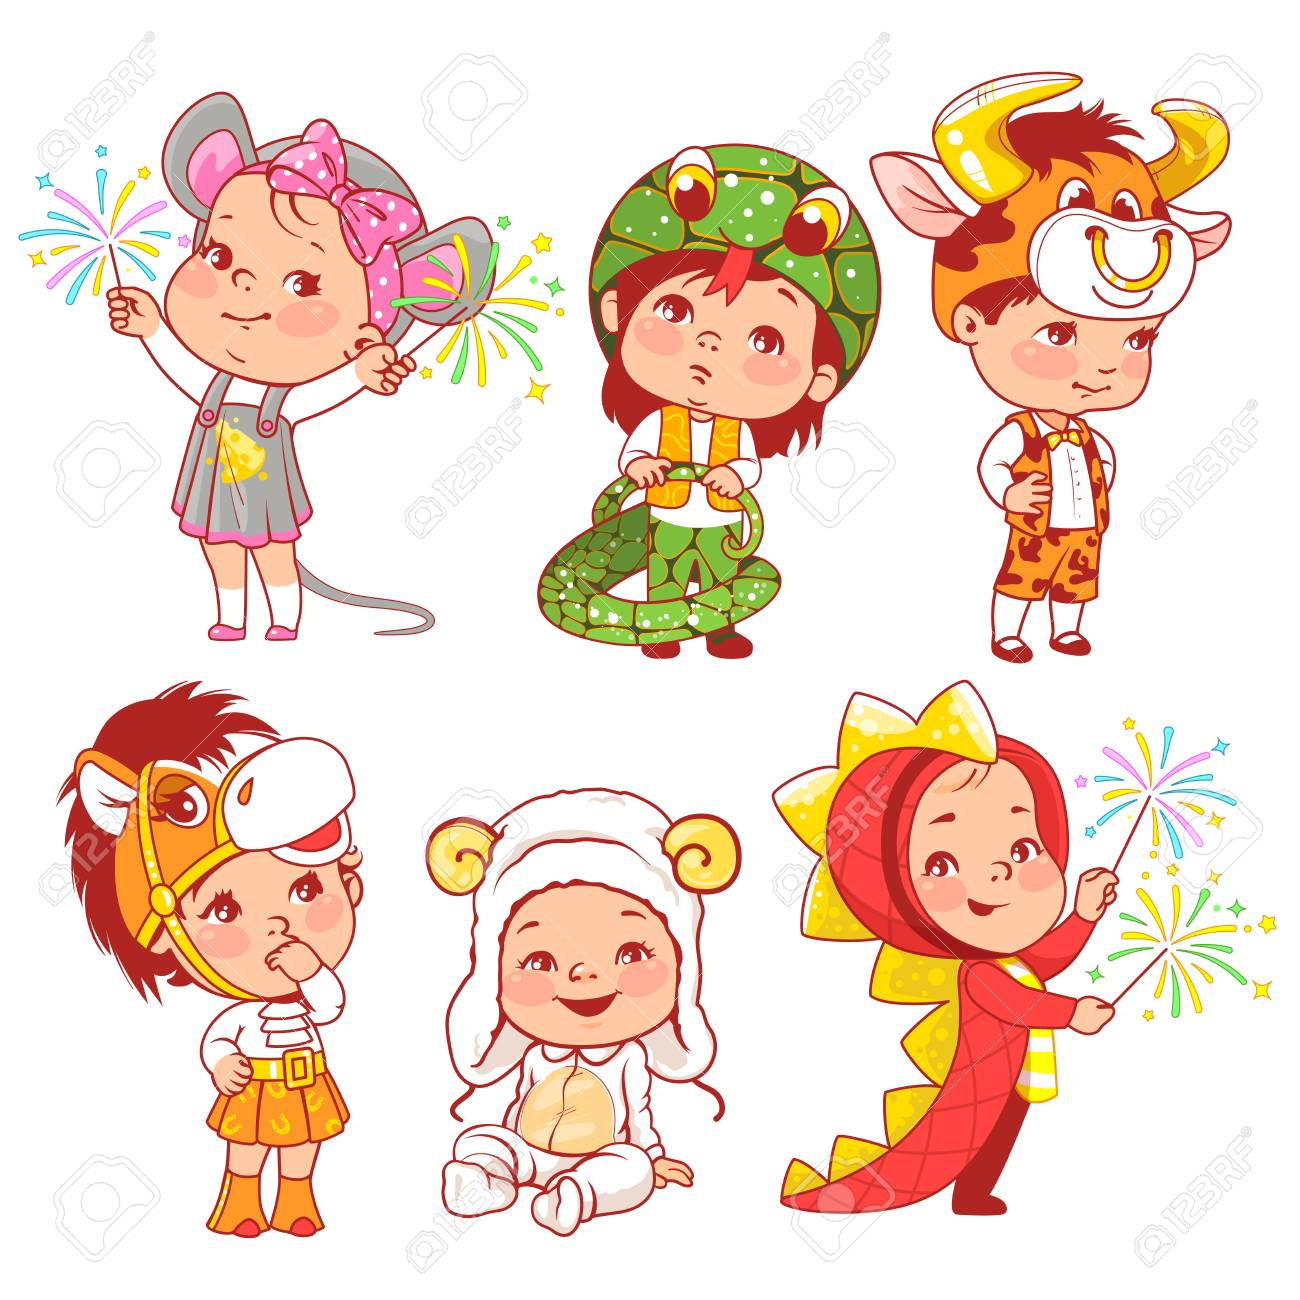 Cute little baby wear carnival costumes. Kindergarten masquerade. Preschool kids as animals. Mask of dragon, ox, mouse, snake, sheep, horse. Girls and boys play animals. Vector illustration. - 120538049